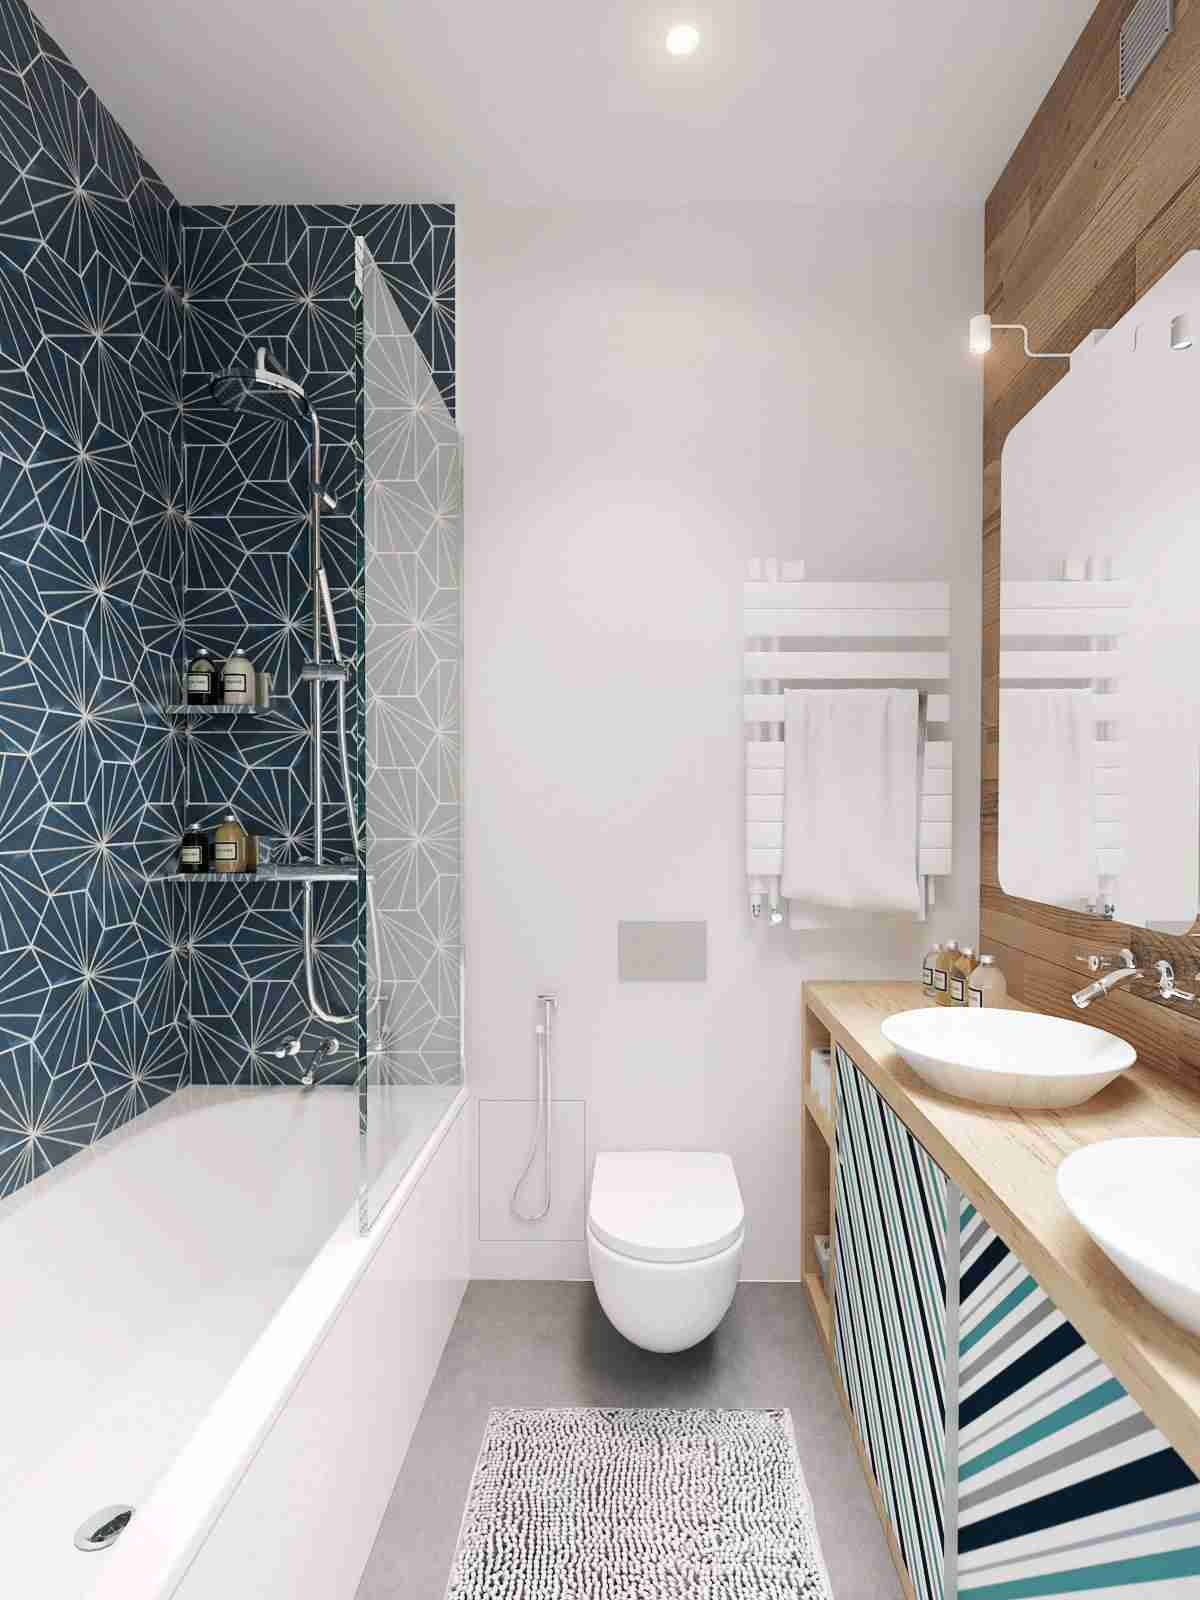 Bathroom Shelves: Fashionable Trends of Practical Interior Decoration. Dark blue accent wall in the ideally white space